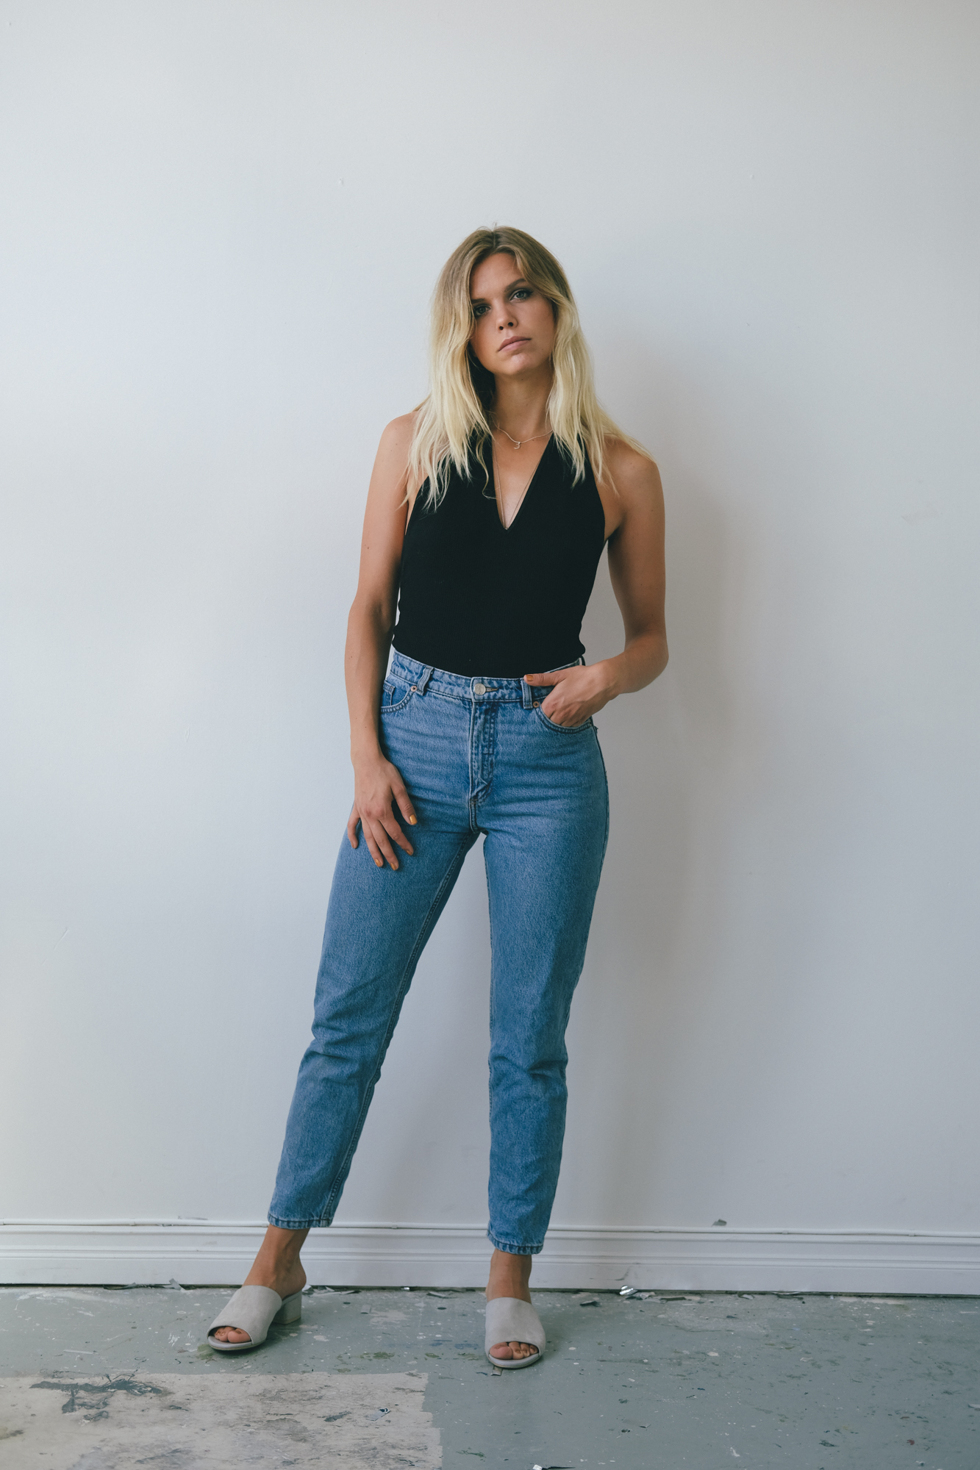 denim & body flora wiström-1